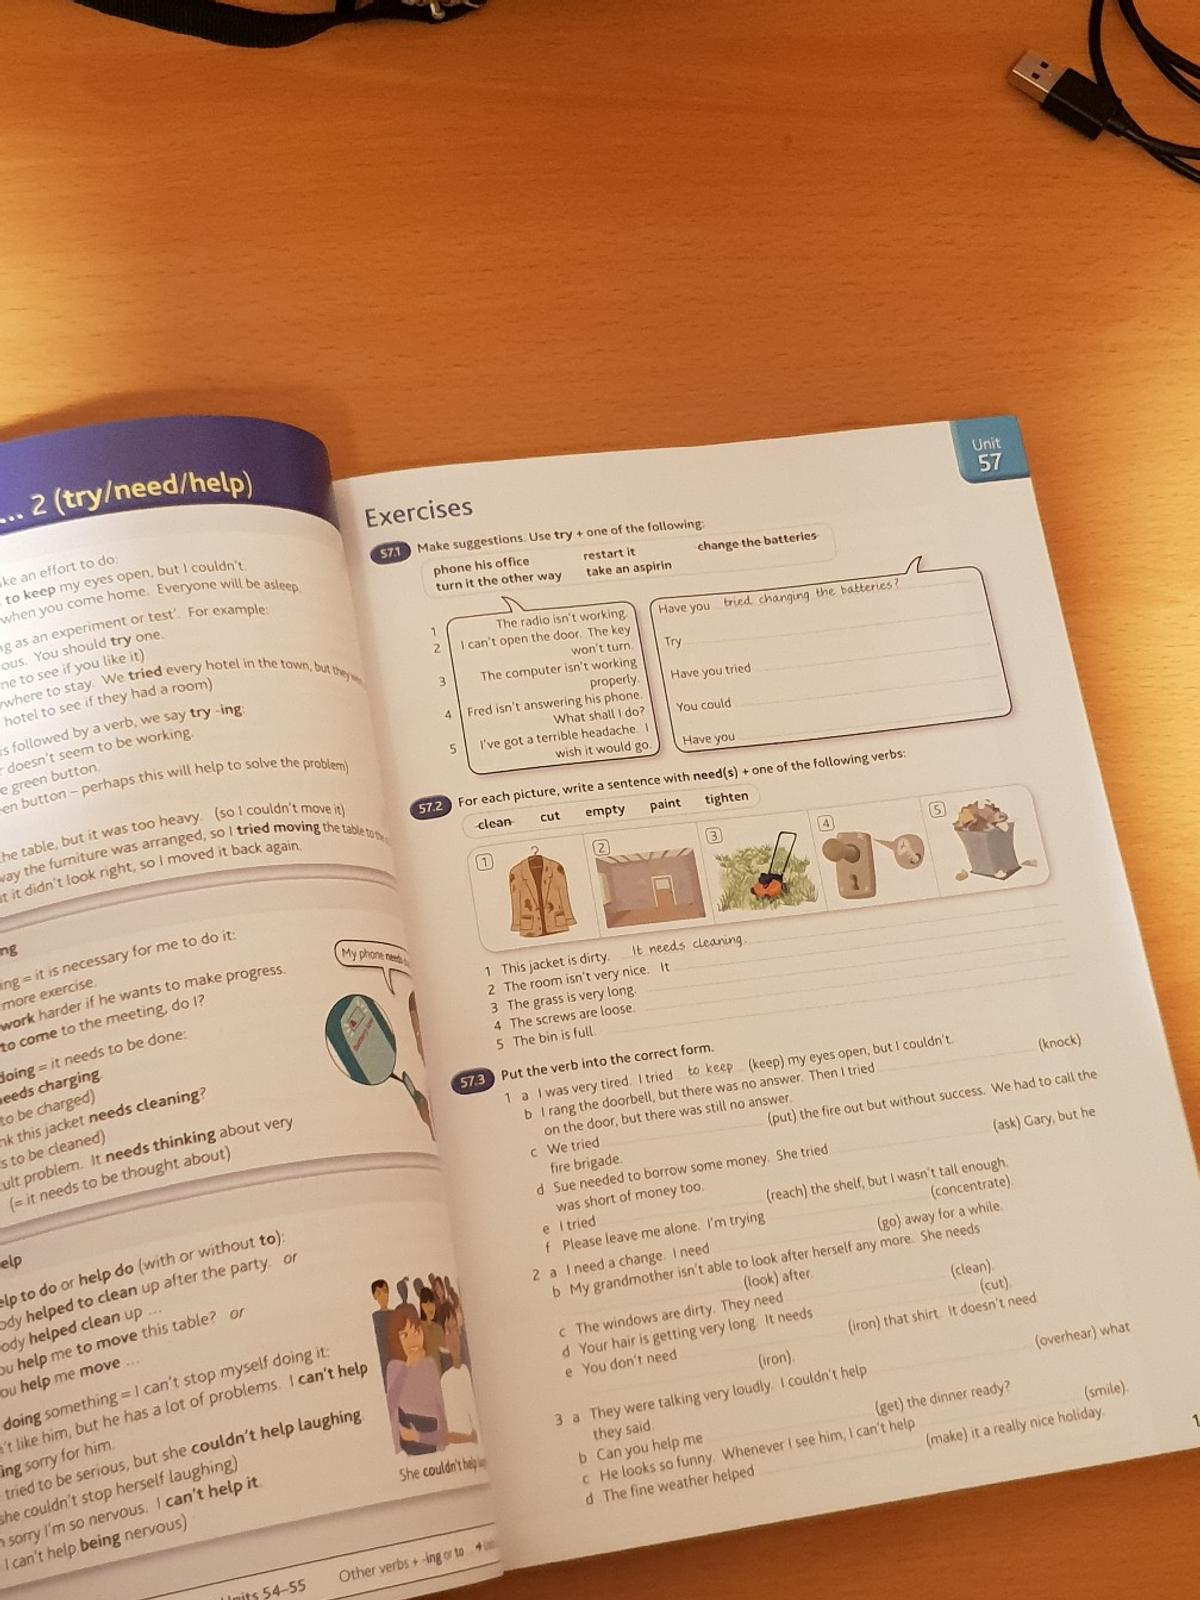 cambridge English grammar in use in M4 Manchester for £10 00 for